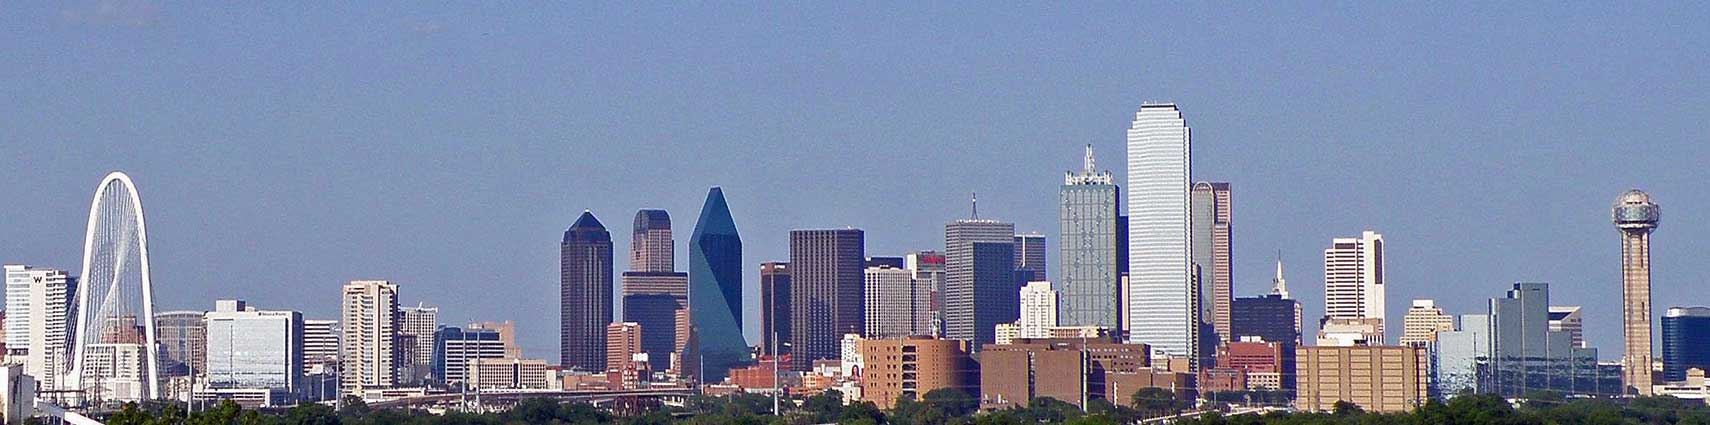 Google Map of the City of Dallas, Texas, USA - Nations Online Project